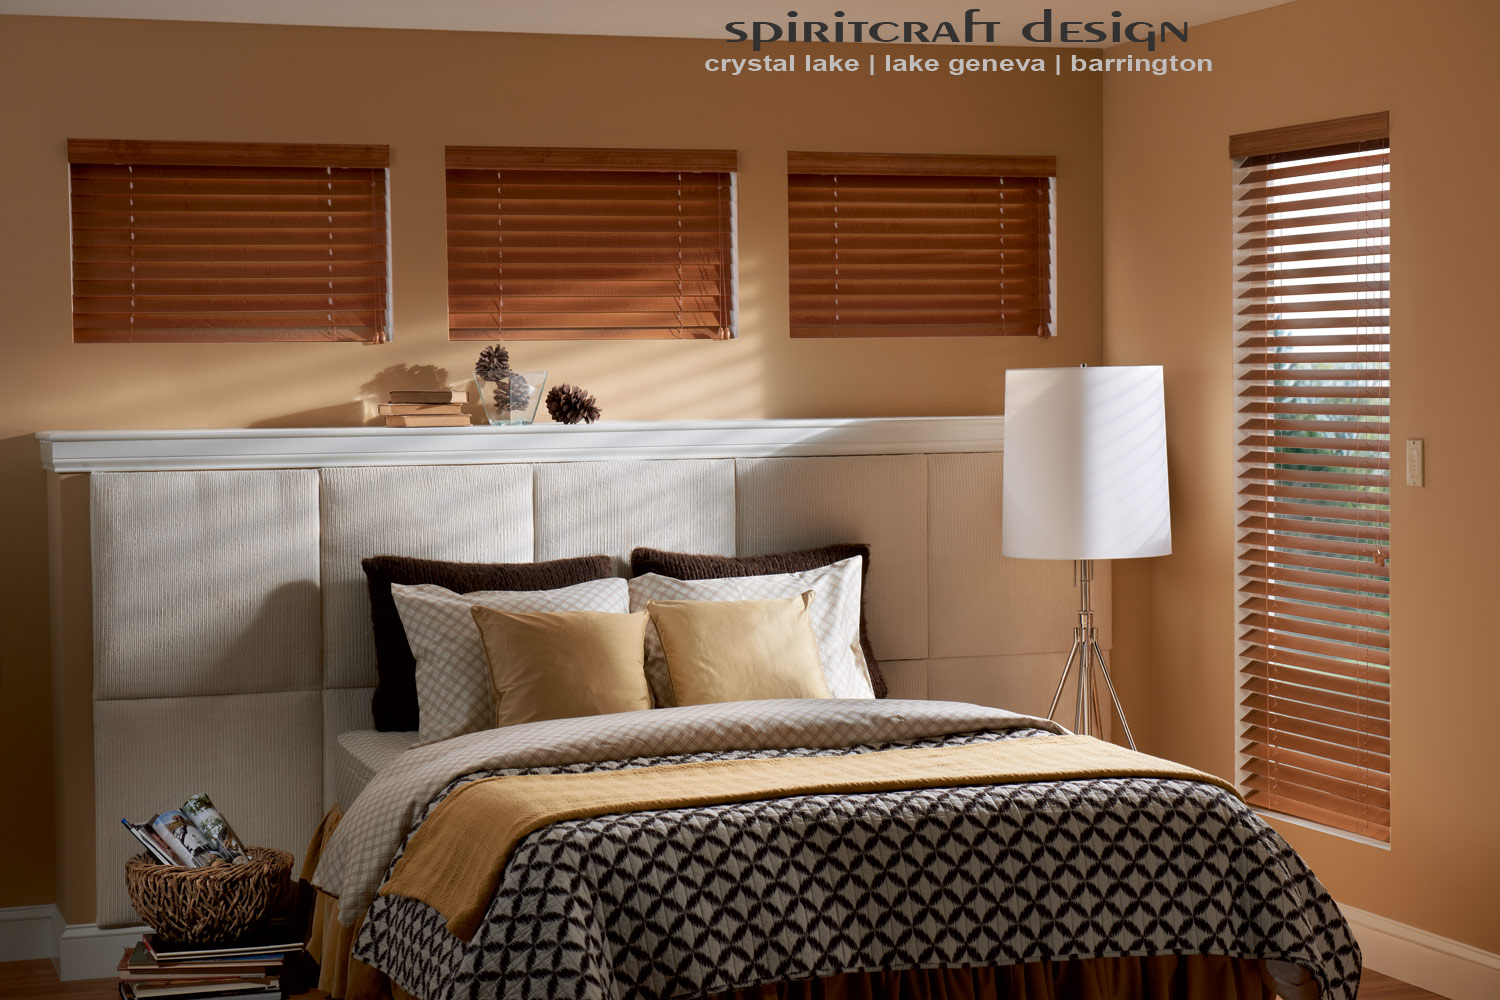 blinds and shades graber hunter douglas crystal lake barrington il. Black Bedroom Furniture Sets. Home Design Ideas